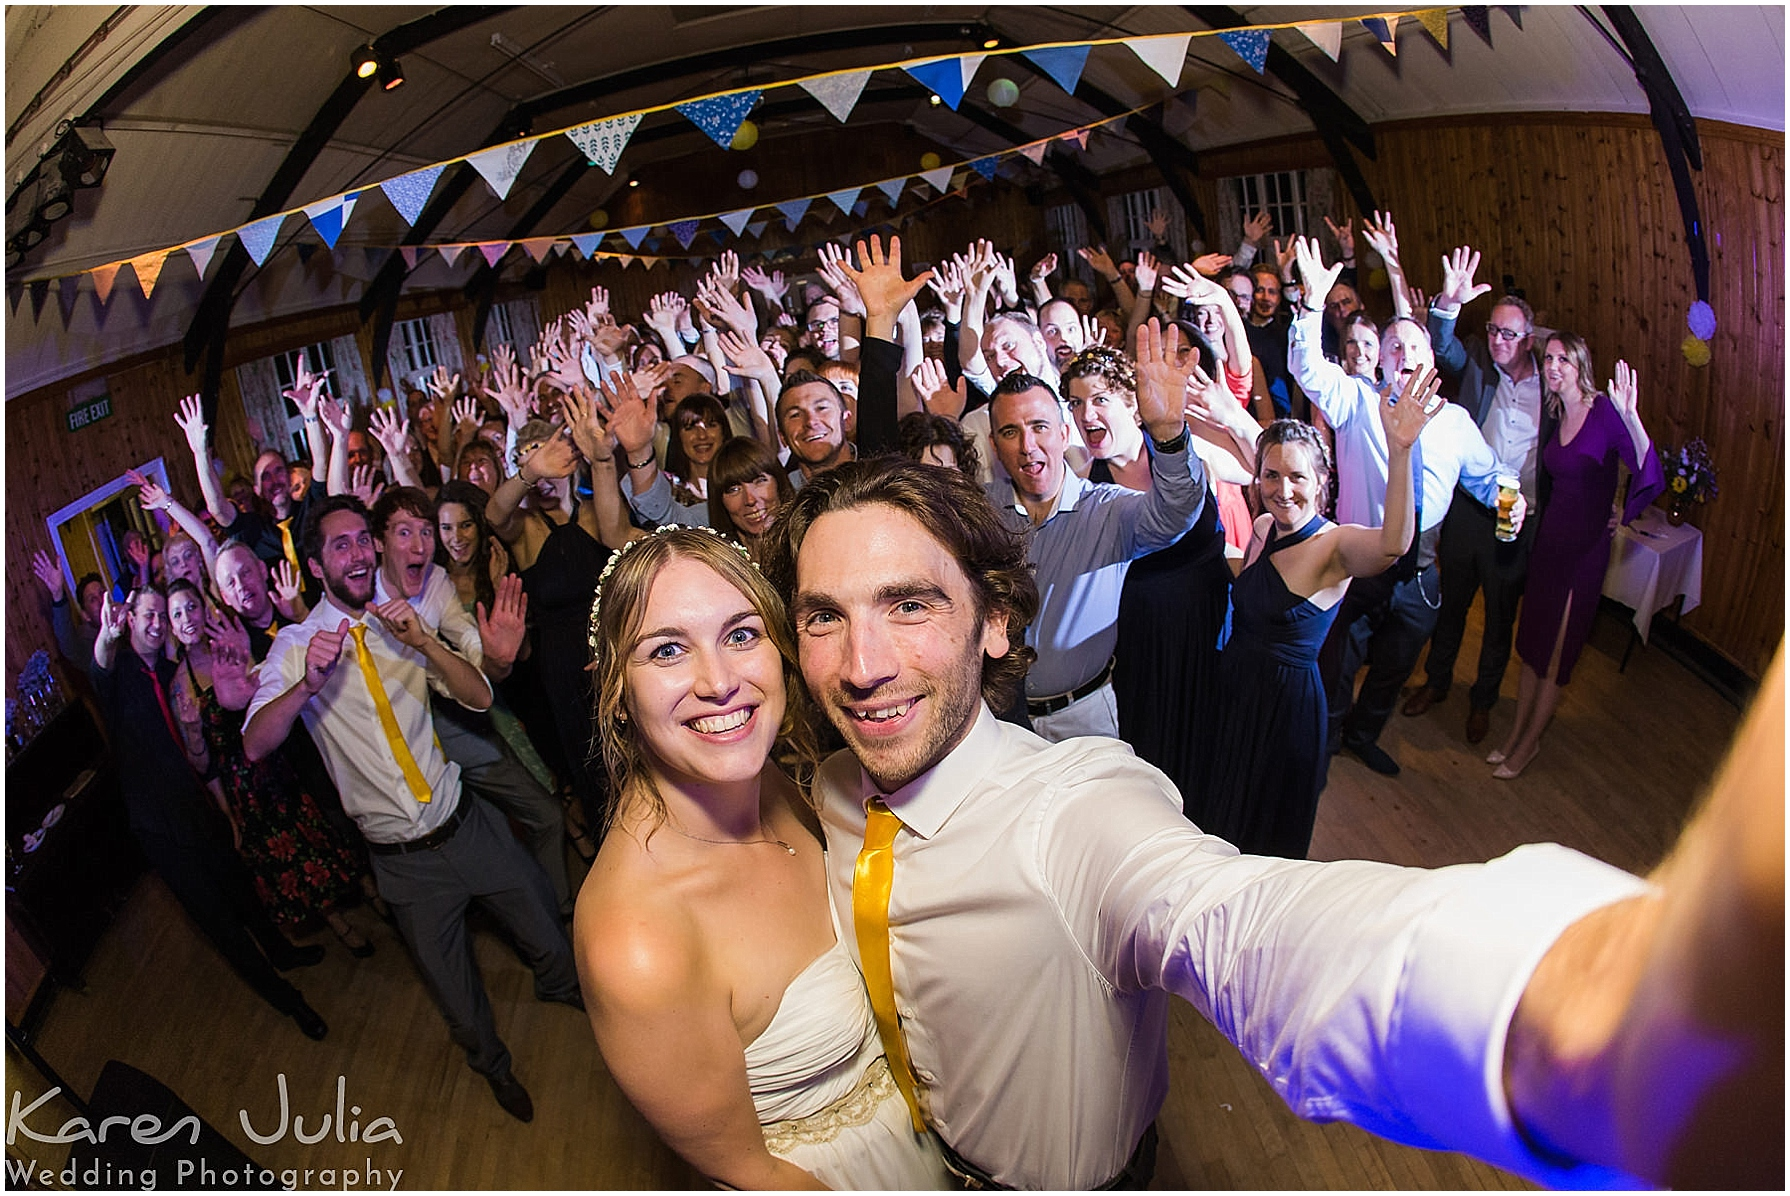 Village Hall Wedding Photography end of night group shot selfie